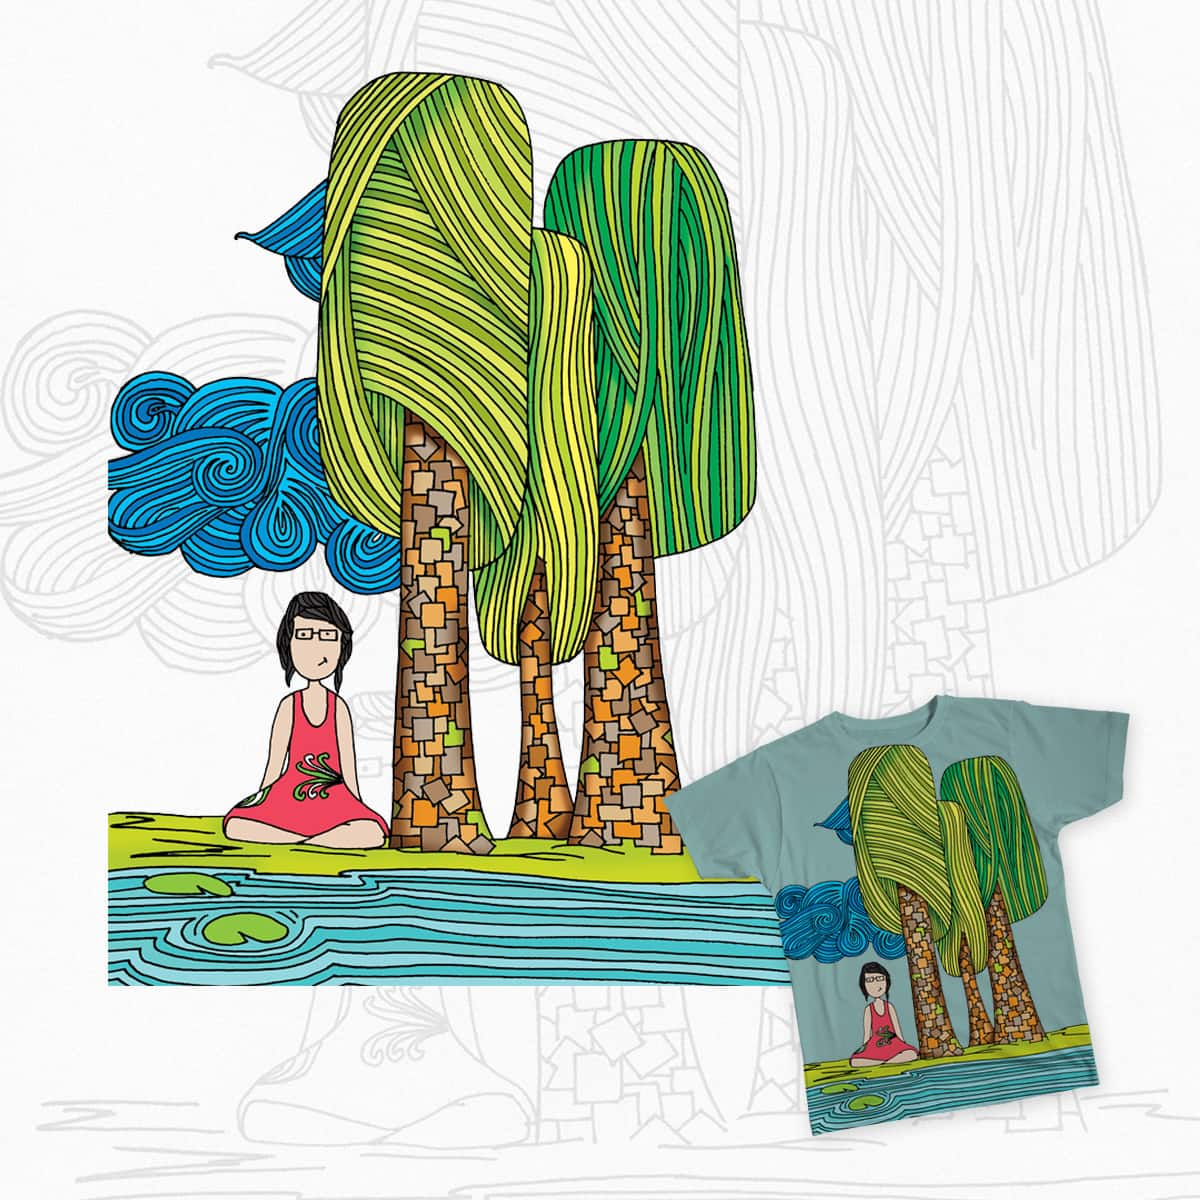 Susana la sana / The healthy Susan by AnDickinson on Threadless